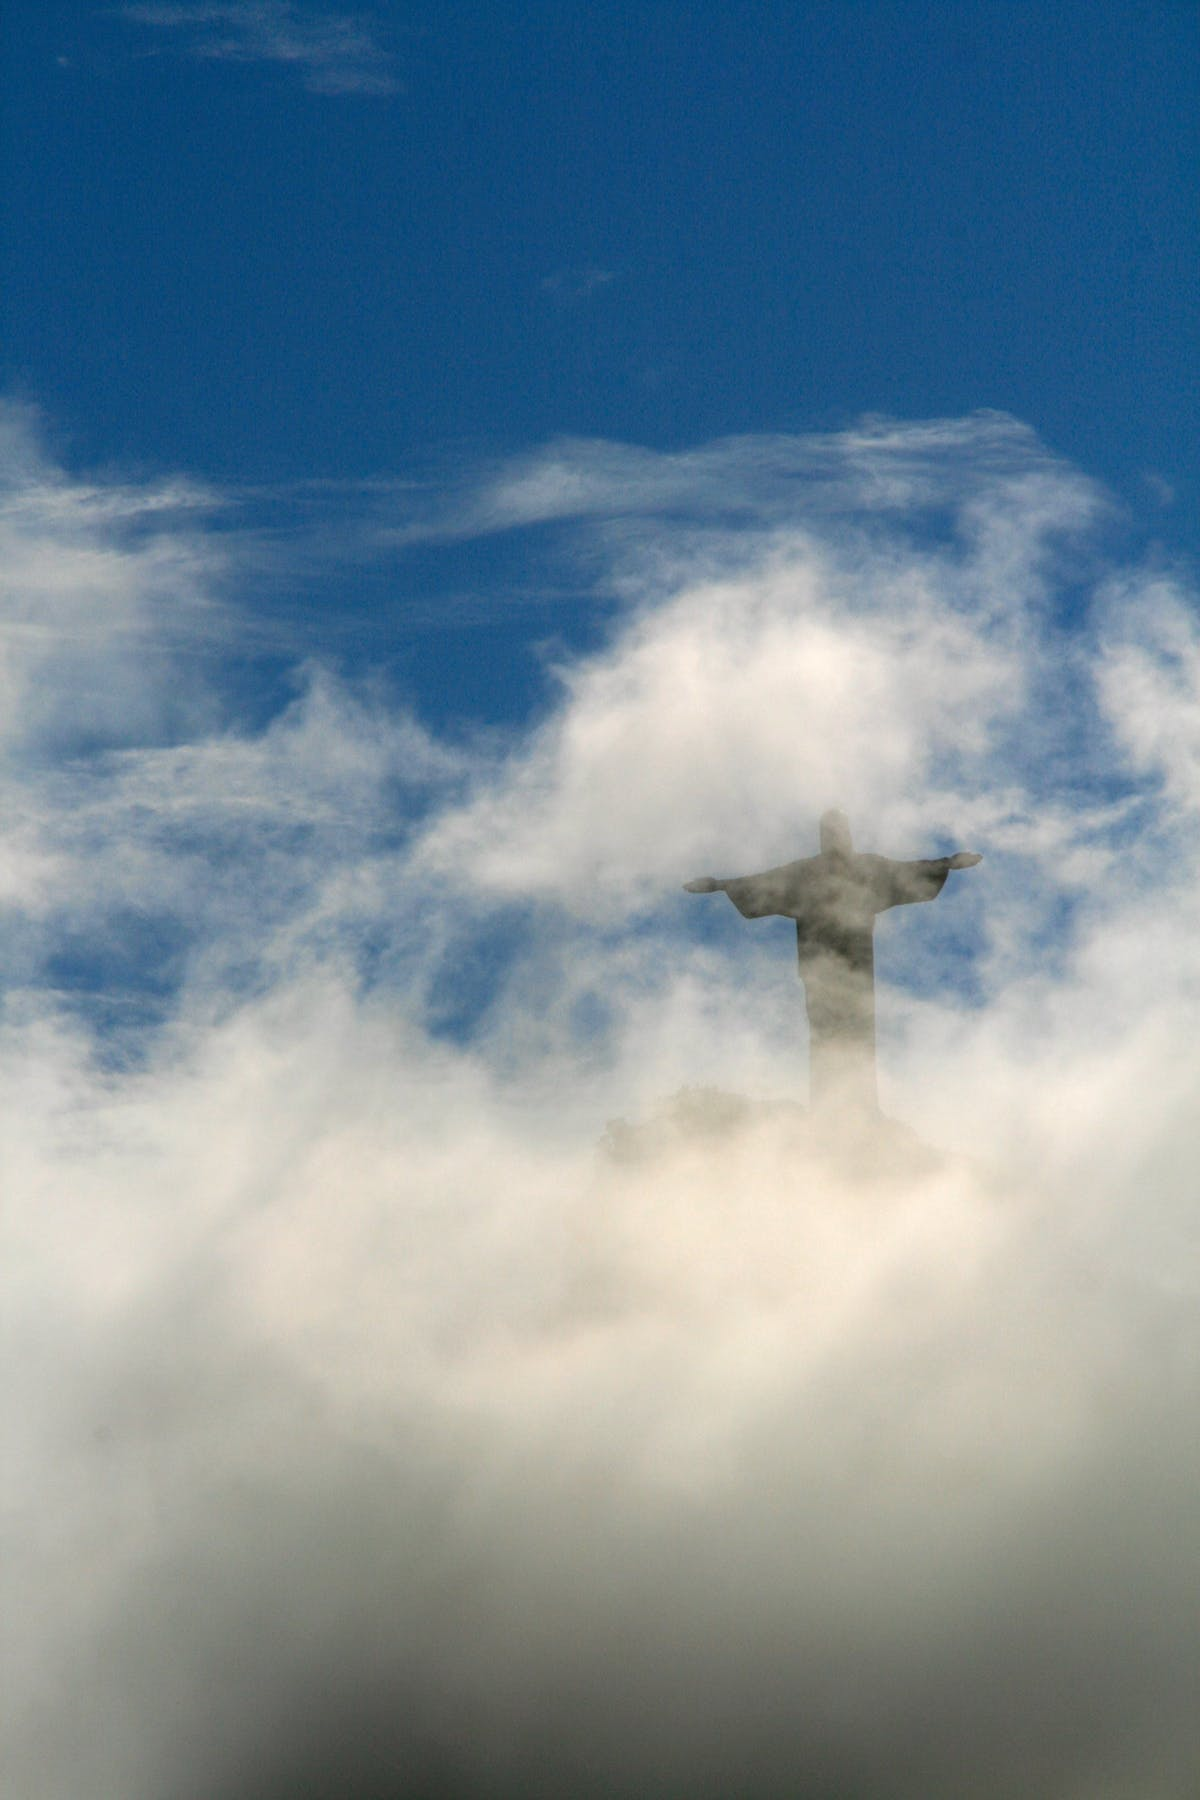 A vacation photo of Brazil which is now a National Geographic stock photo